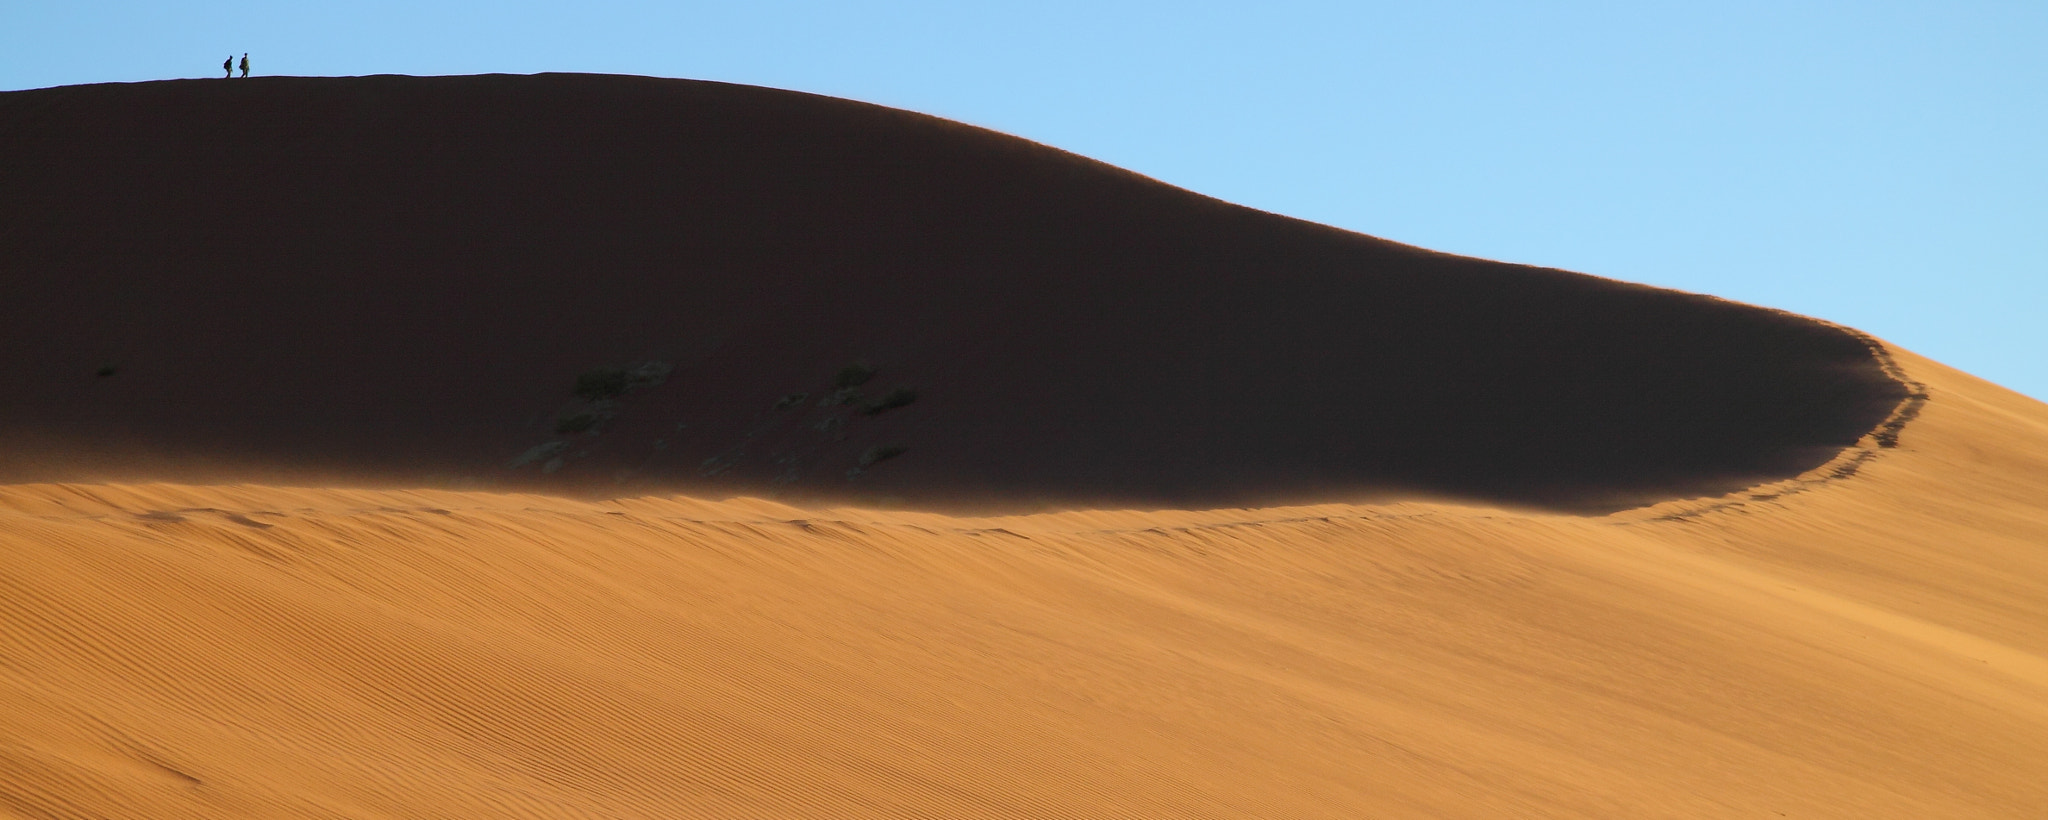 Photograph Winding dune by Charles Lacy on 500px